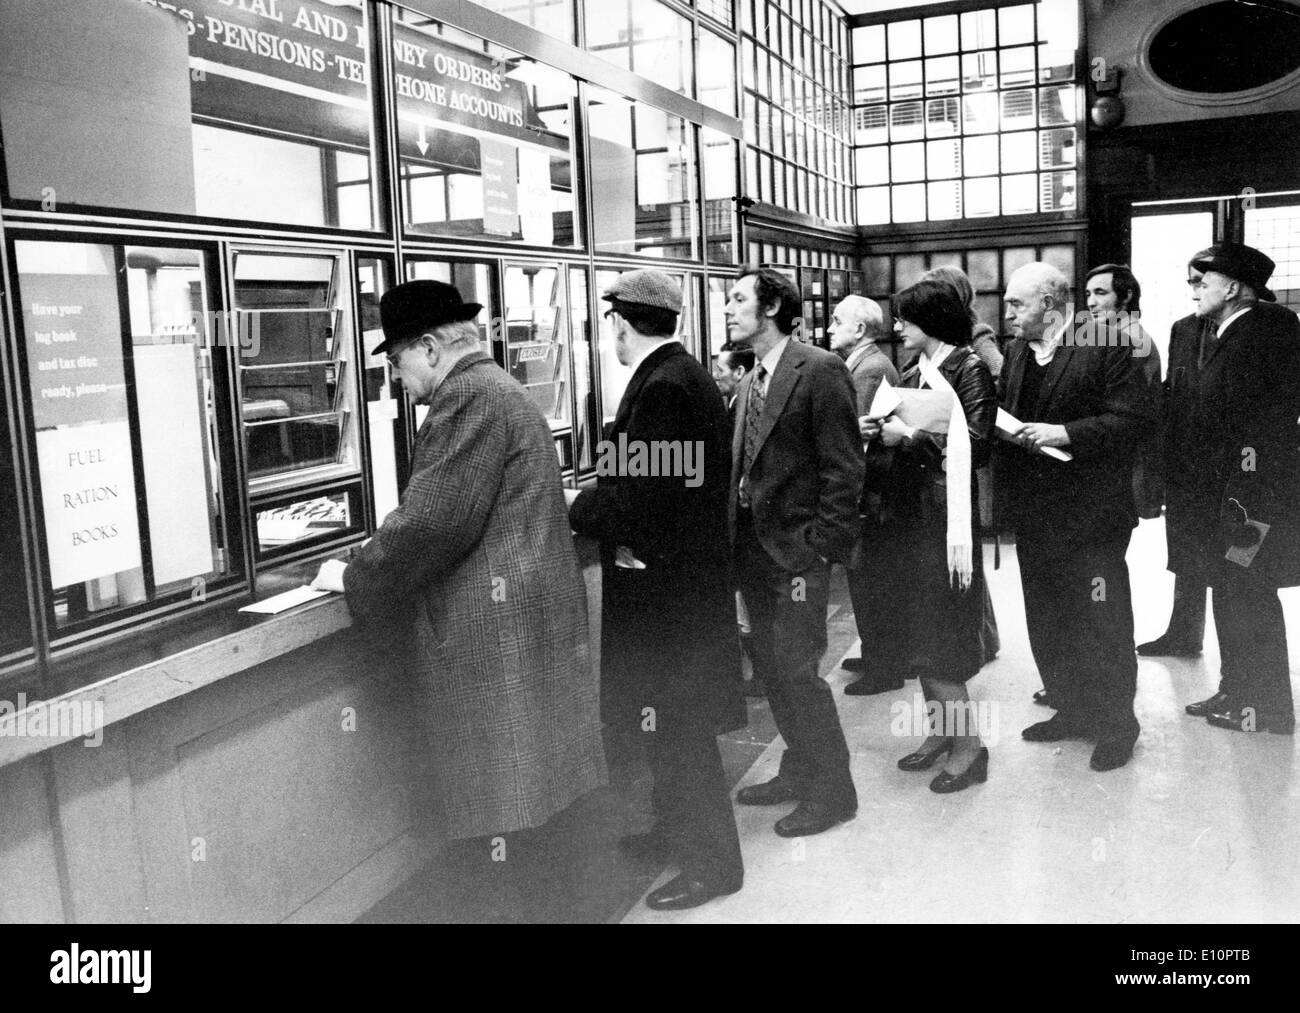 1973 oil crisis - People standing in a line to acquire oil ration cards - Stock Image